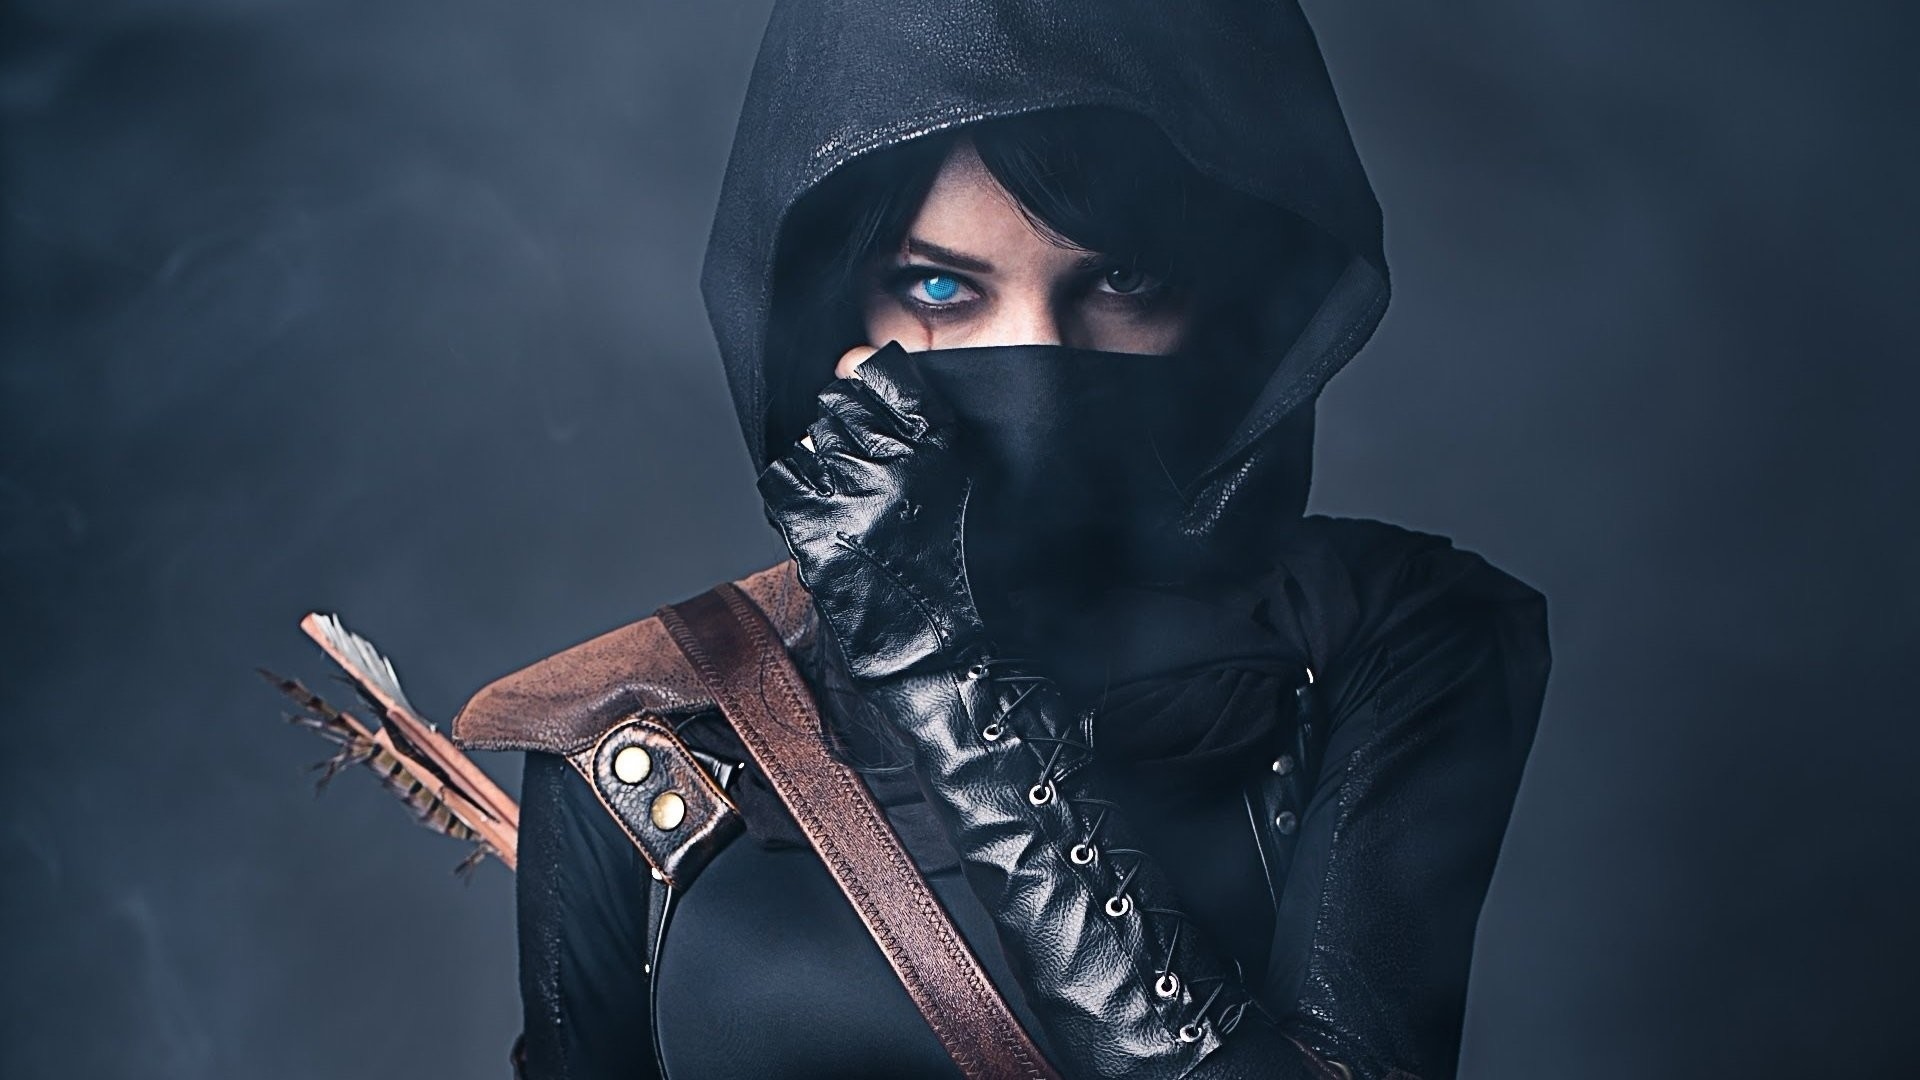 Female Ninja Wallpaper (59+ Images